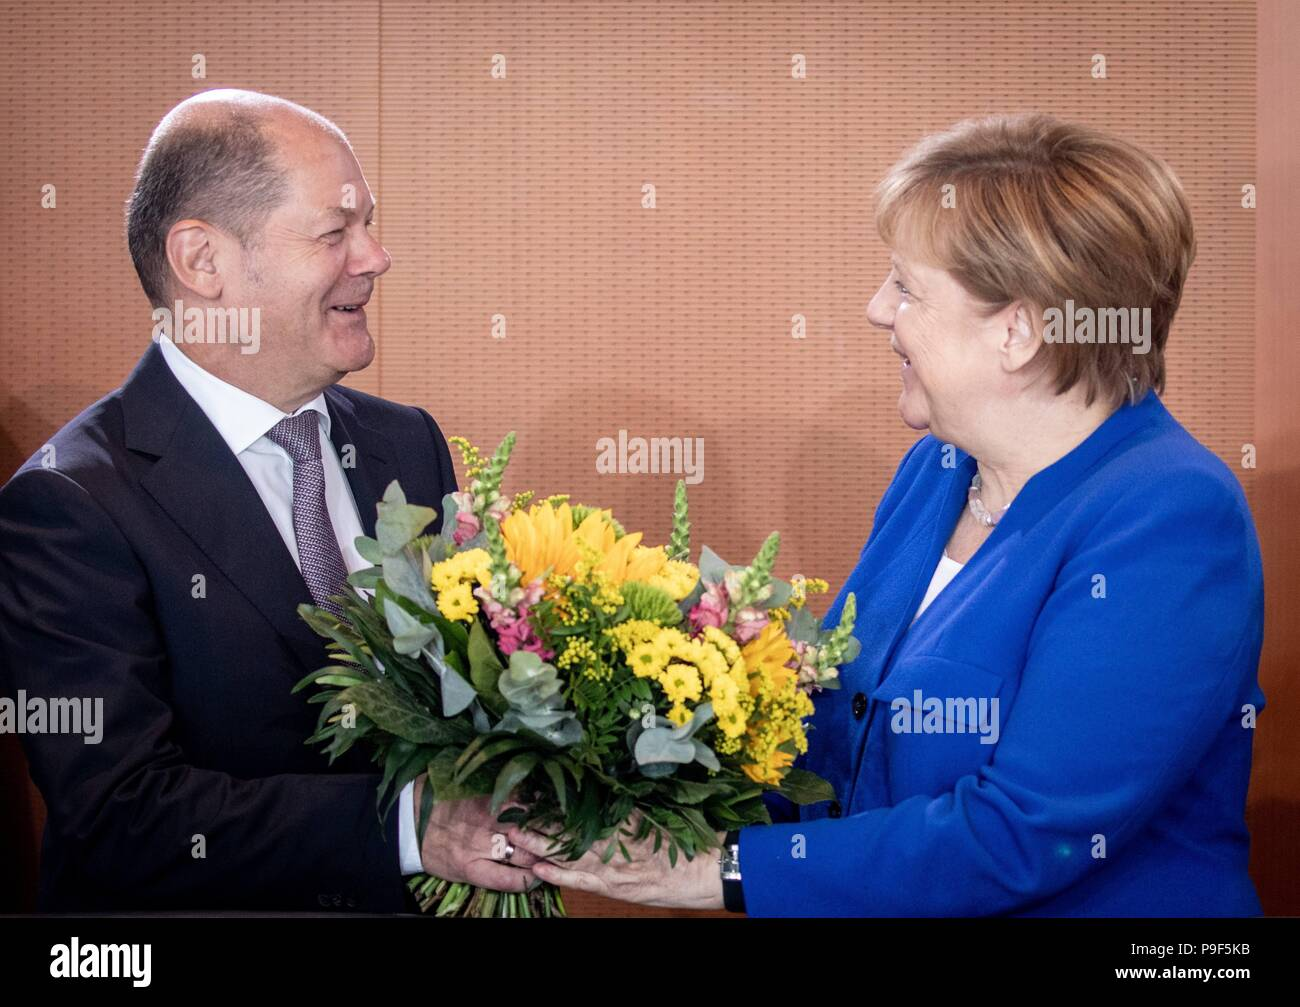 18 July 2018, Berlin, Germany: German chancellor Angela Merkel (CDU) receives a belated birthday bouqet from Olaf Scholz (SPD, L), federal minister of finance at the start of the federal cabinet meeting at the chancellery. Photo: Kay Nietfeld/dpa - Stock Image